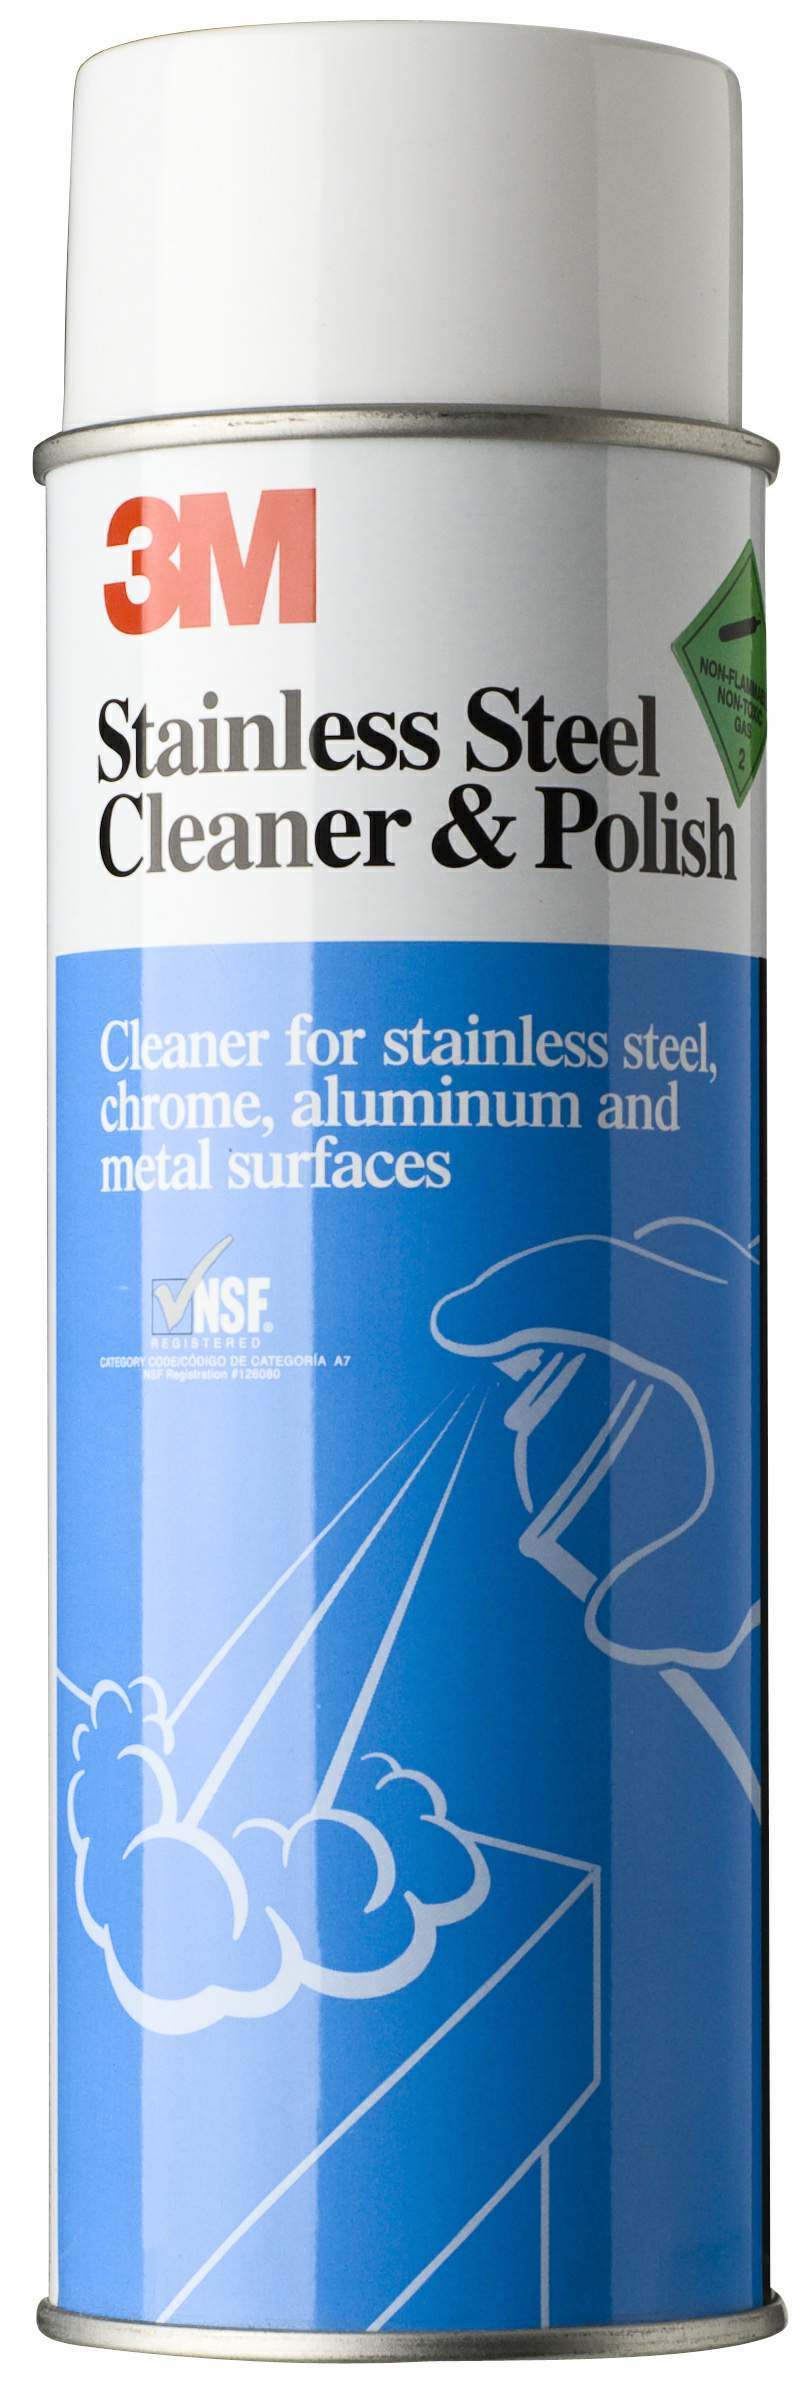 Thumbnail - 3M Stainless Steel Cleaner Aerosol 600g